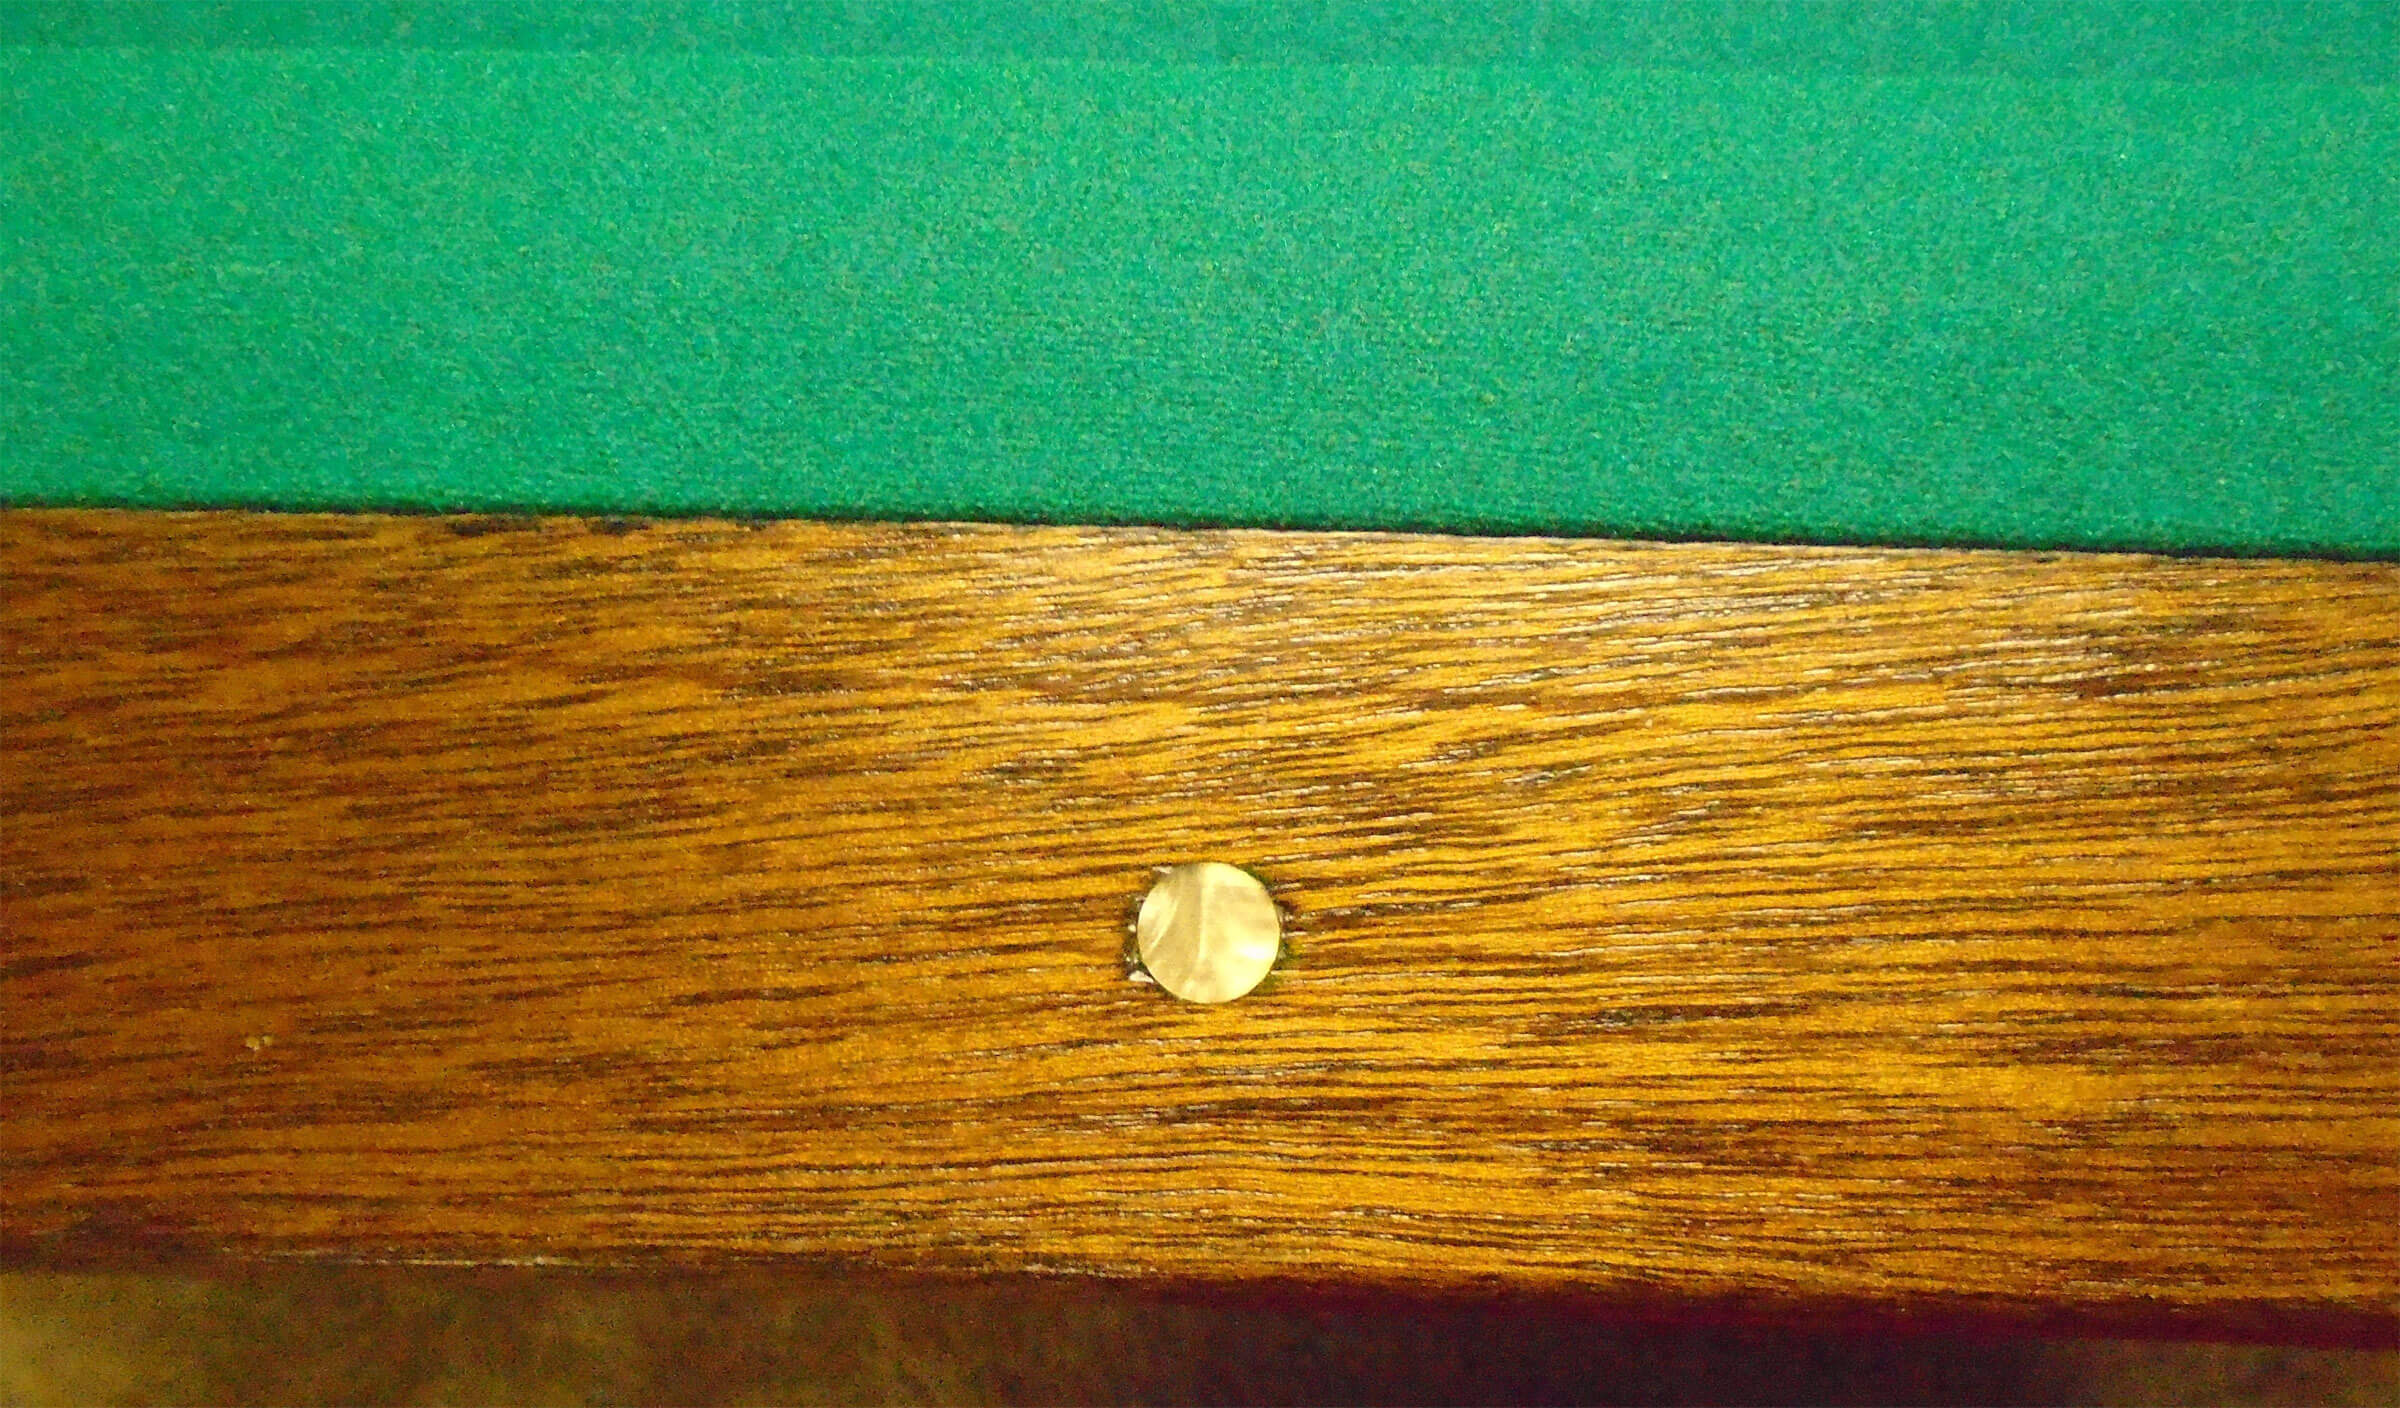 Pool table wood texture - Dsc02272 Jpg User1488313833 User1488313833 Pool Table Identification